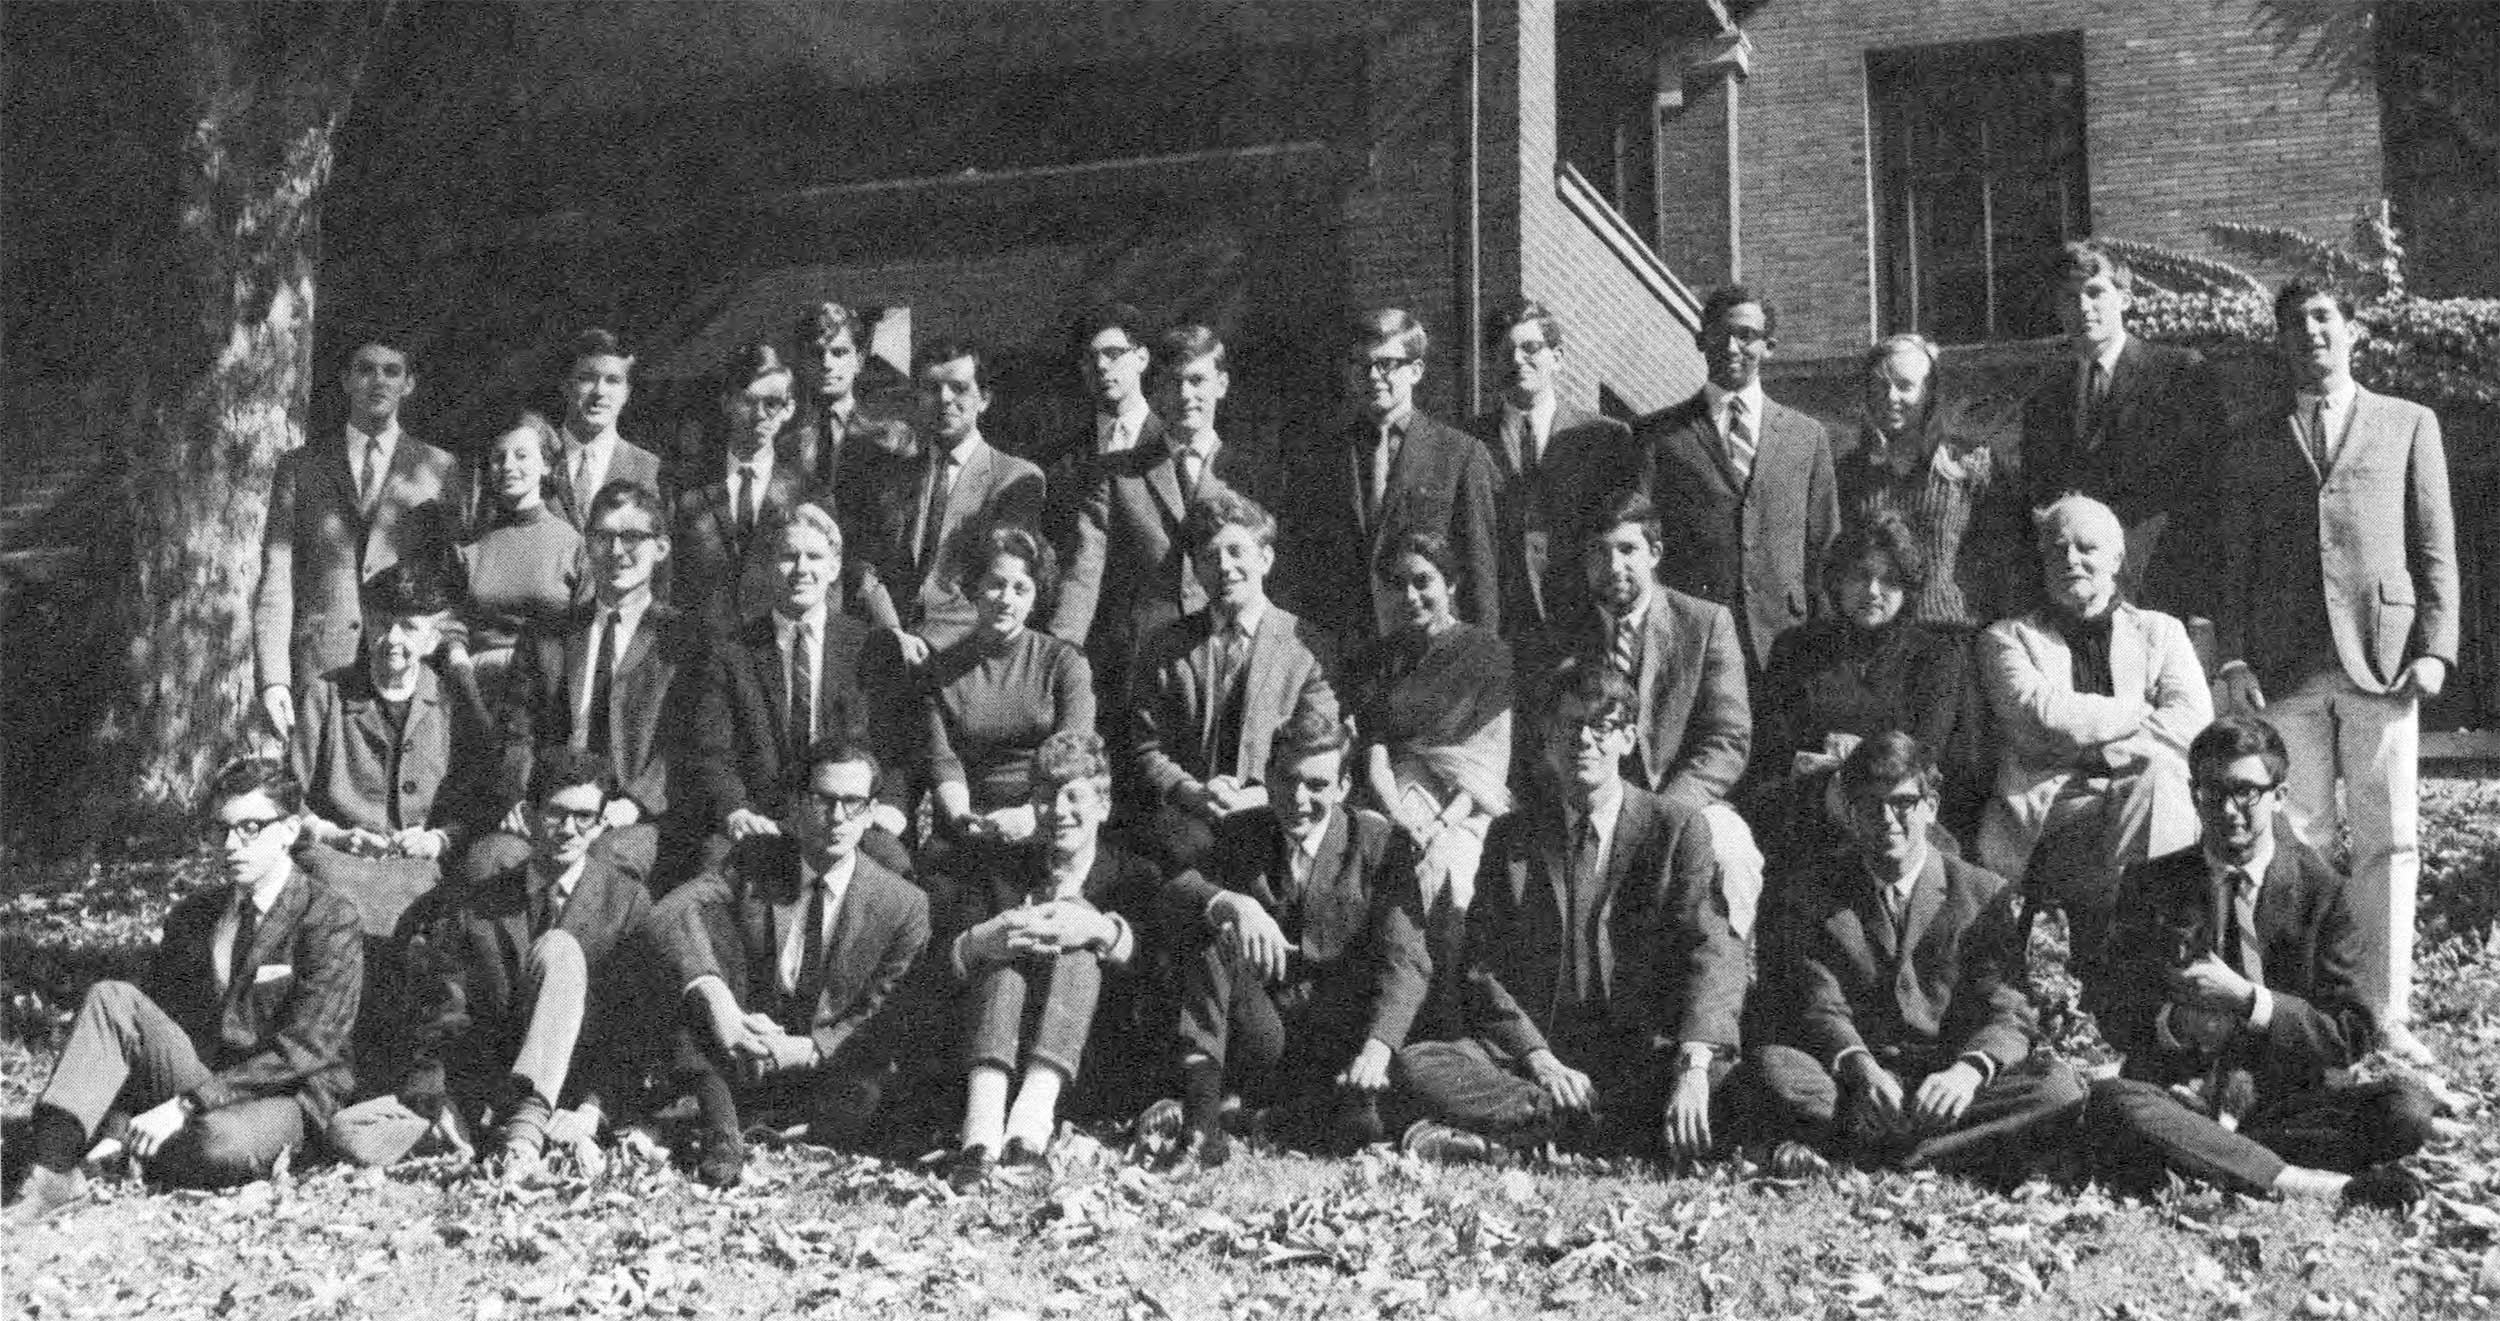 Barbara Herman as an undergraduate at Cornell (second row, fourth from the left) sits with fellow Telluride House members including faculty residents Frances Perkins (second row, first from the left) and Paul Grice (second row, first from the right).